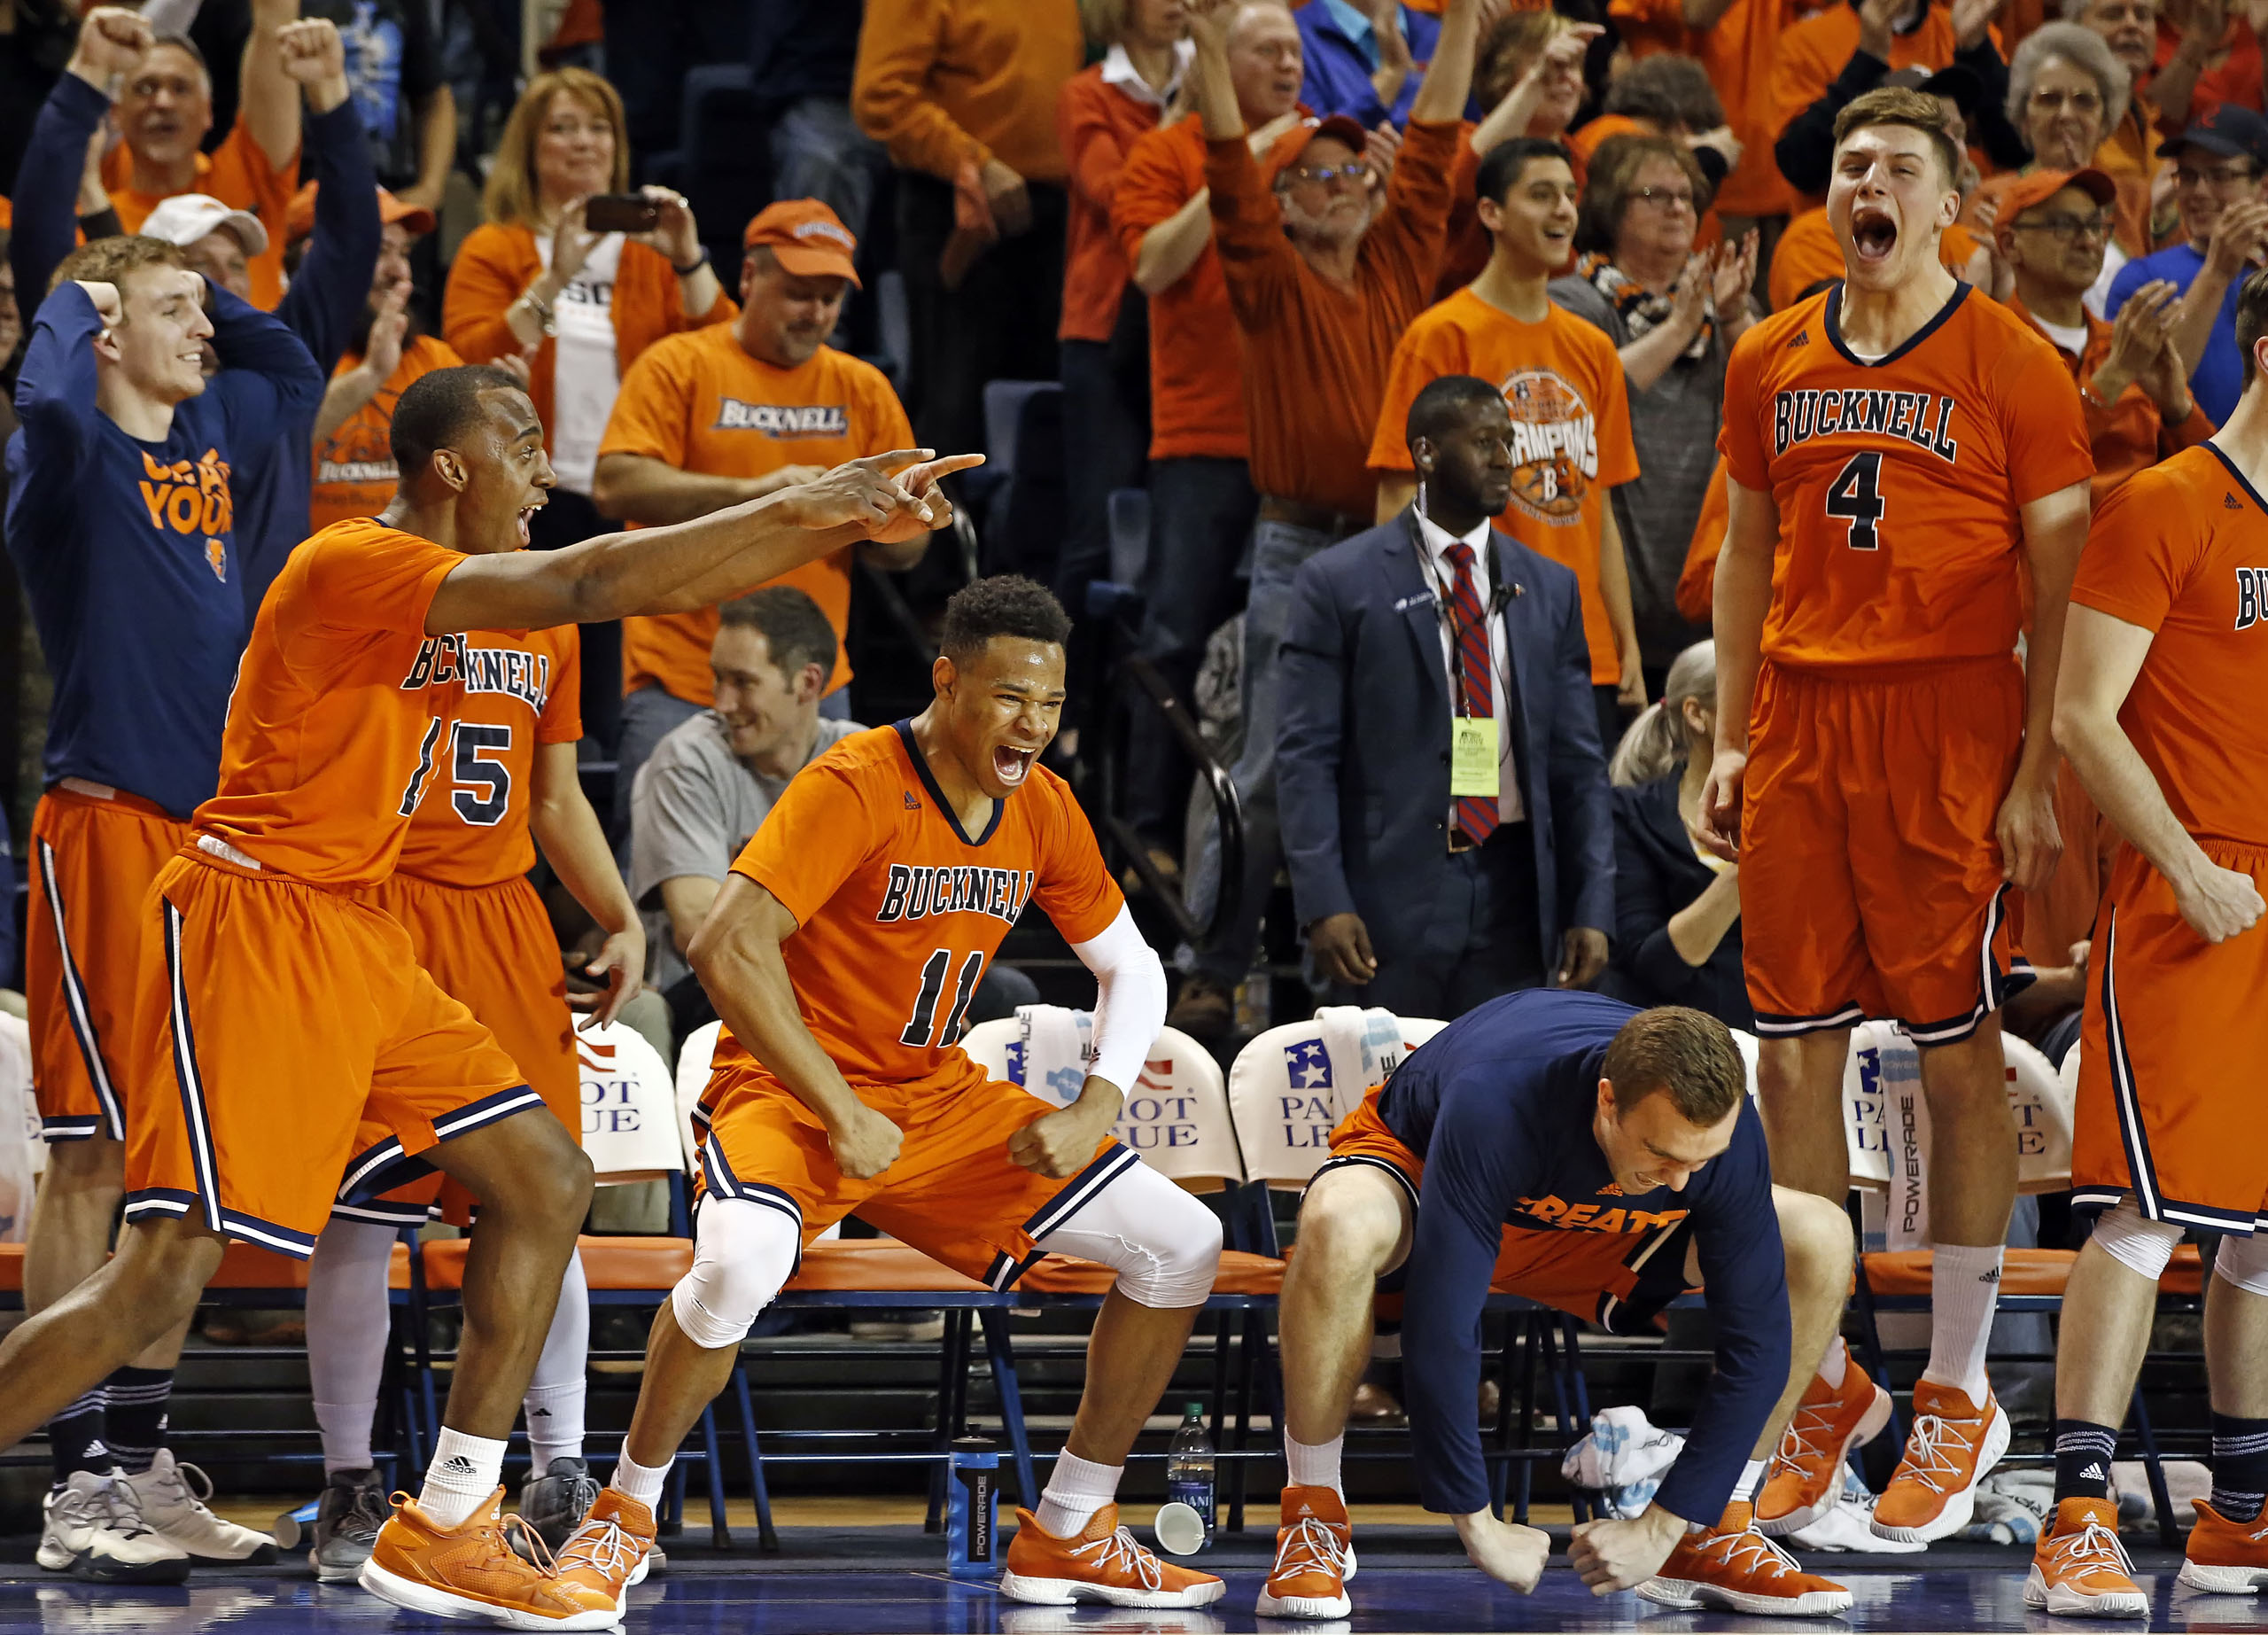 Players on the Bucknell bench celebrate at the end of the team's NCAA college basketball game against Lehigh for the Patriot League tournament championship in Lewisburg, Pa., on March 8, 2017. Bucknell won 81-65.